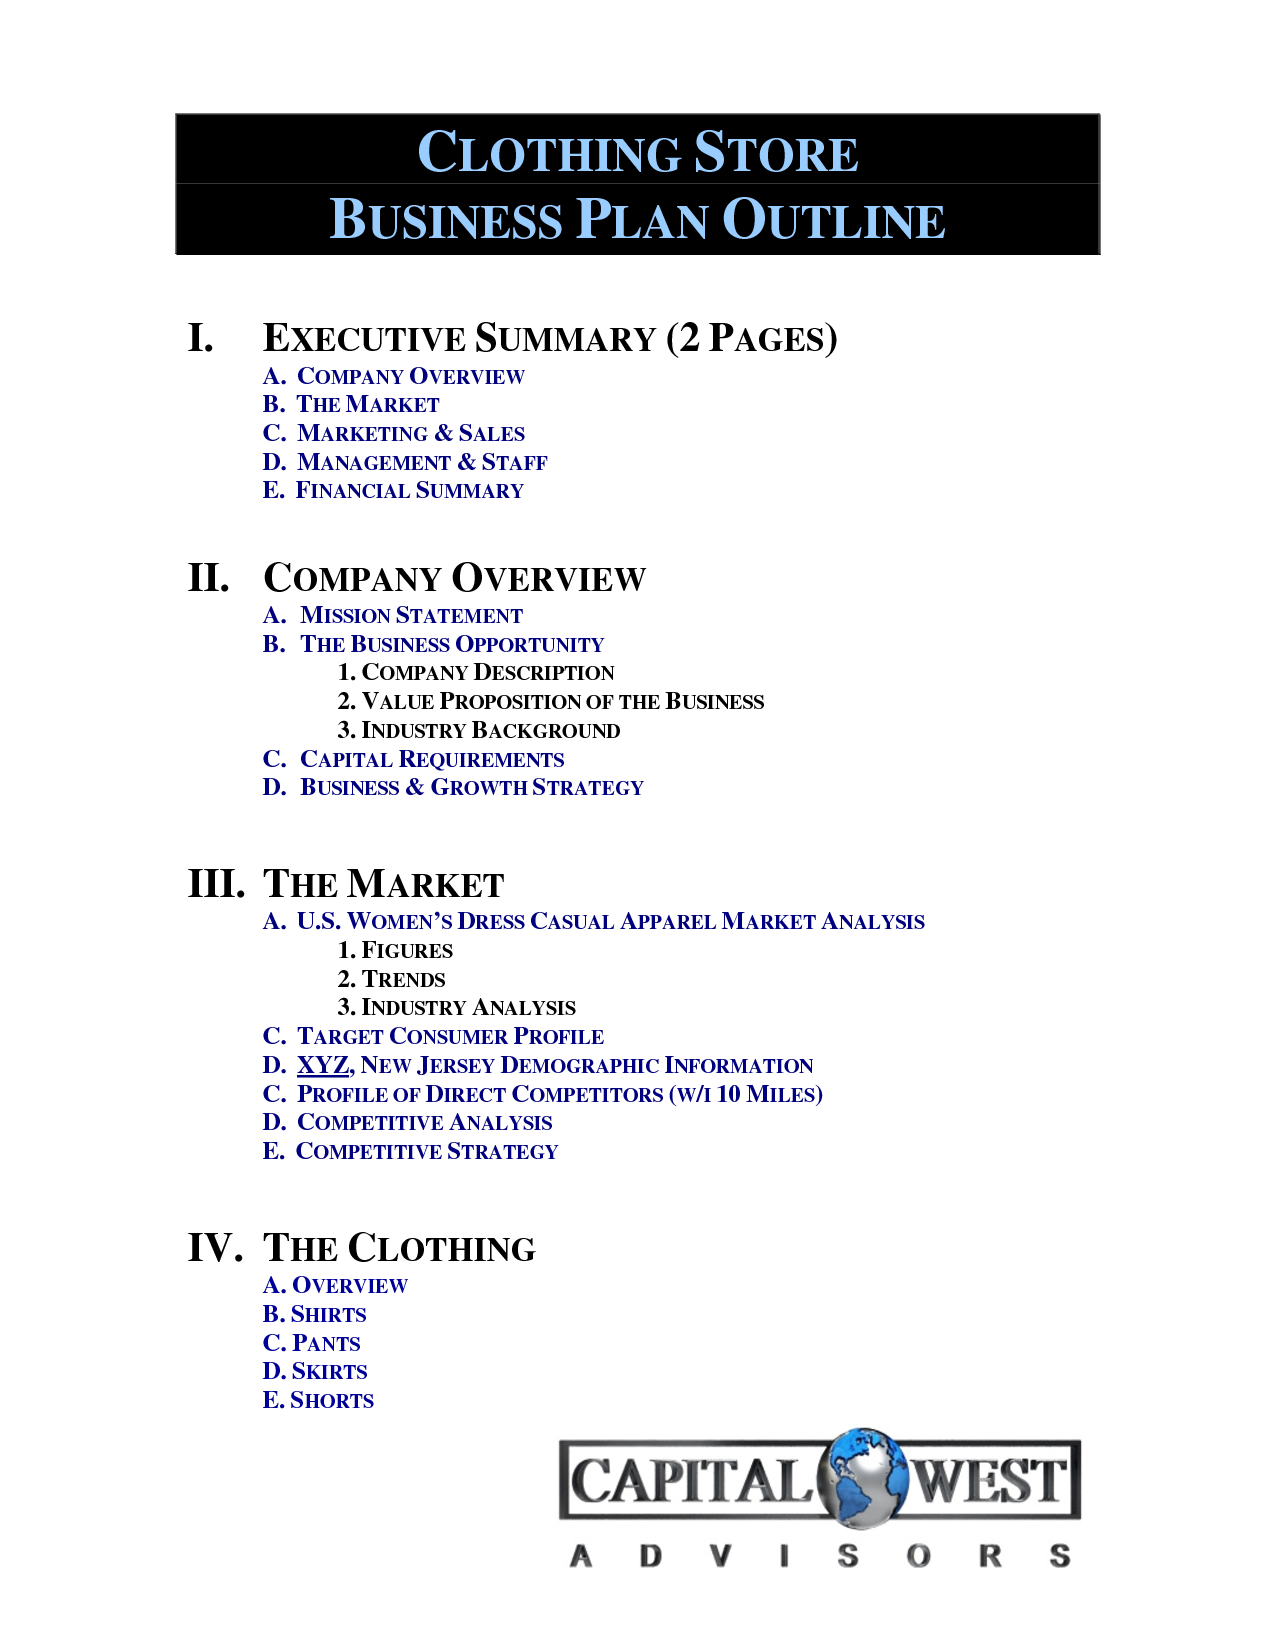 Clothing line business plan template free free business template clothing line business plan template free free business template accmission Images